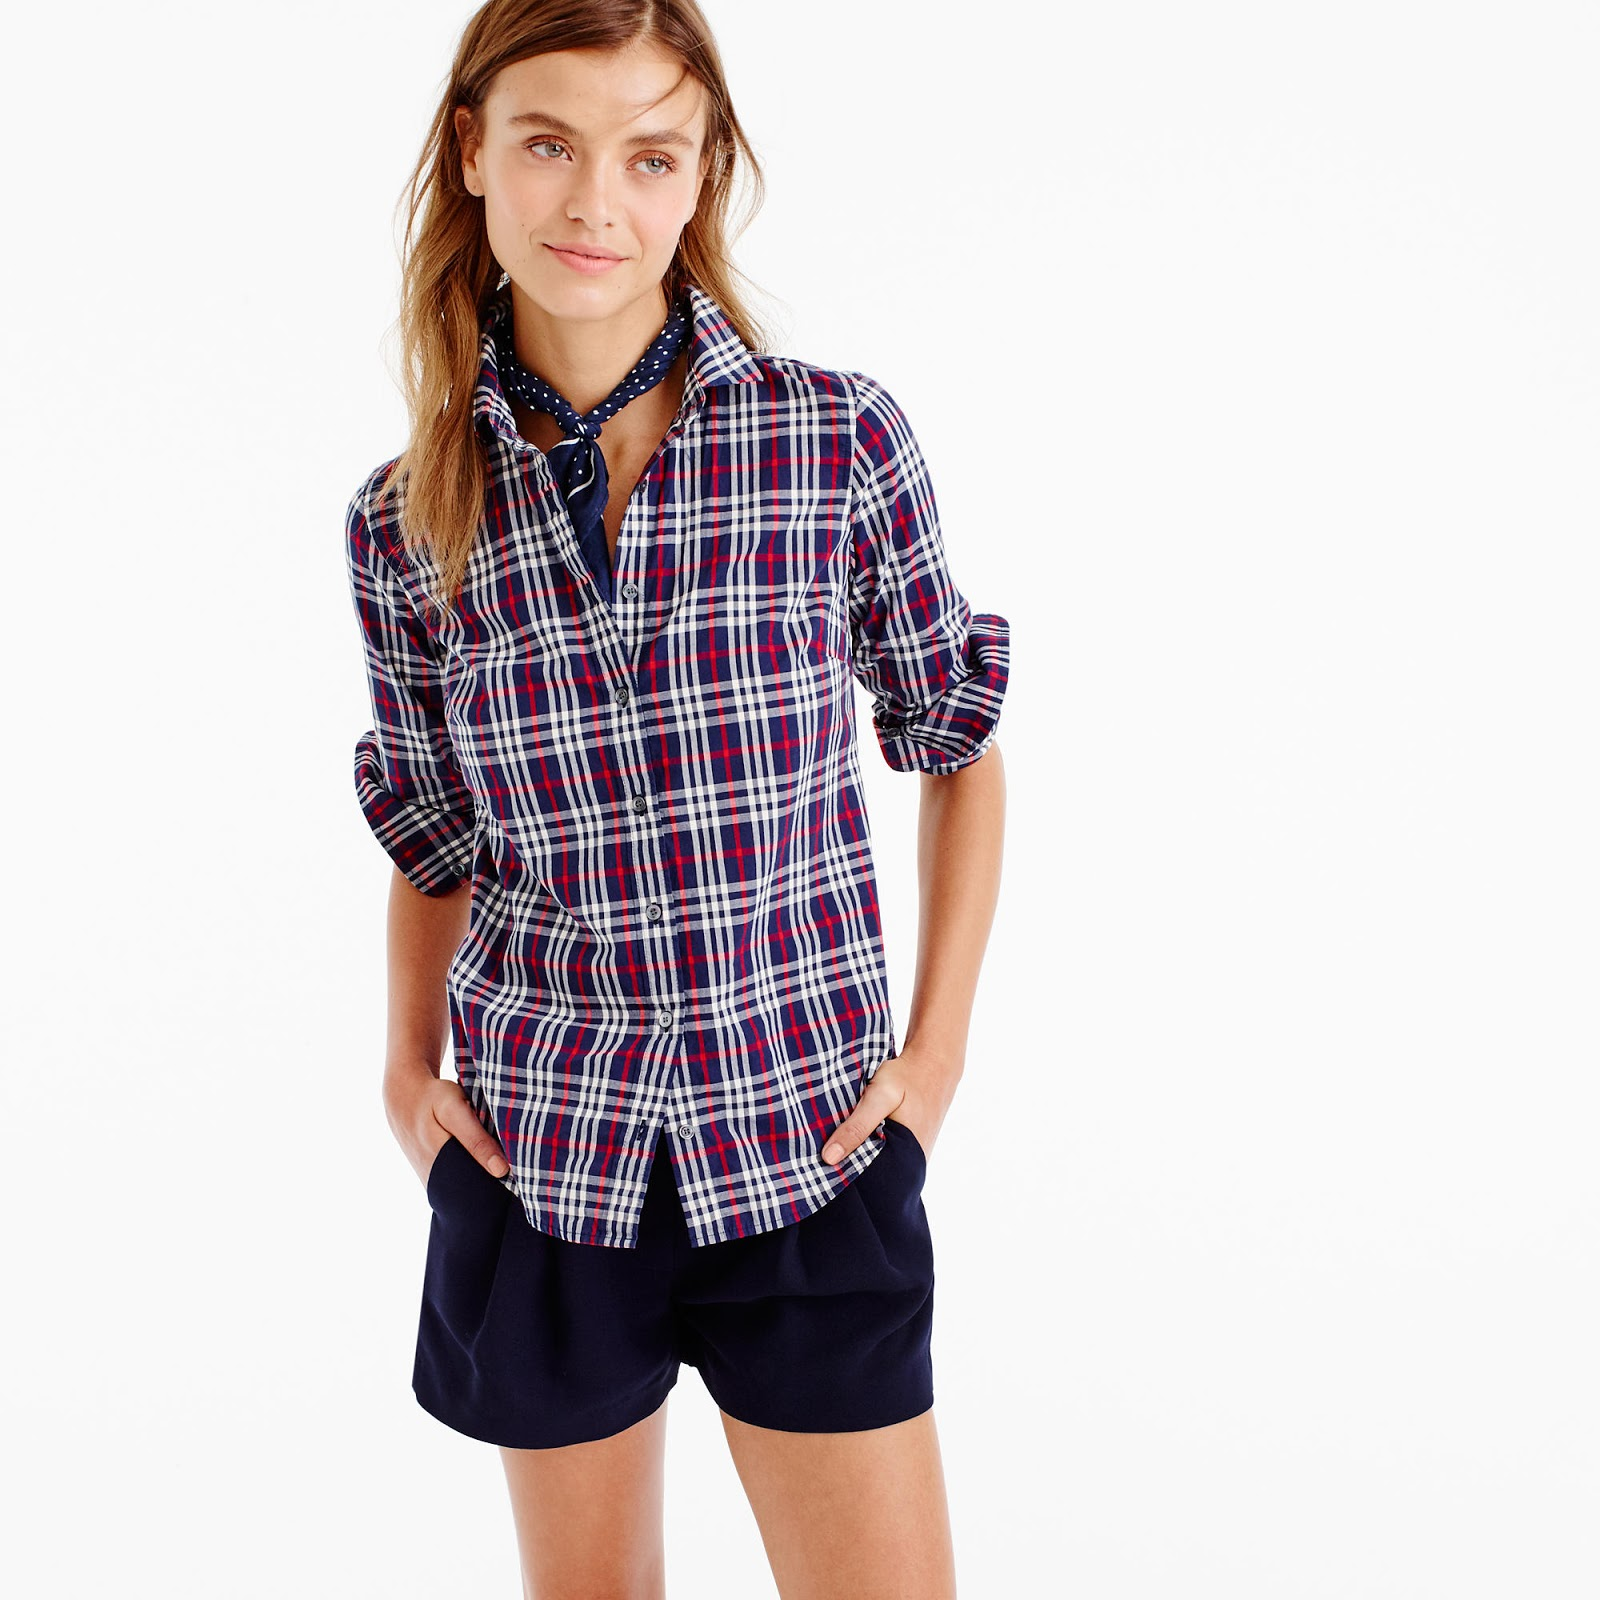 J.Crew's perfect shirt in plaid PLUS lots of other great arrivals from the brand